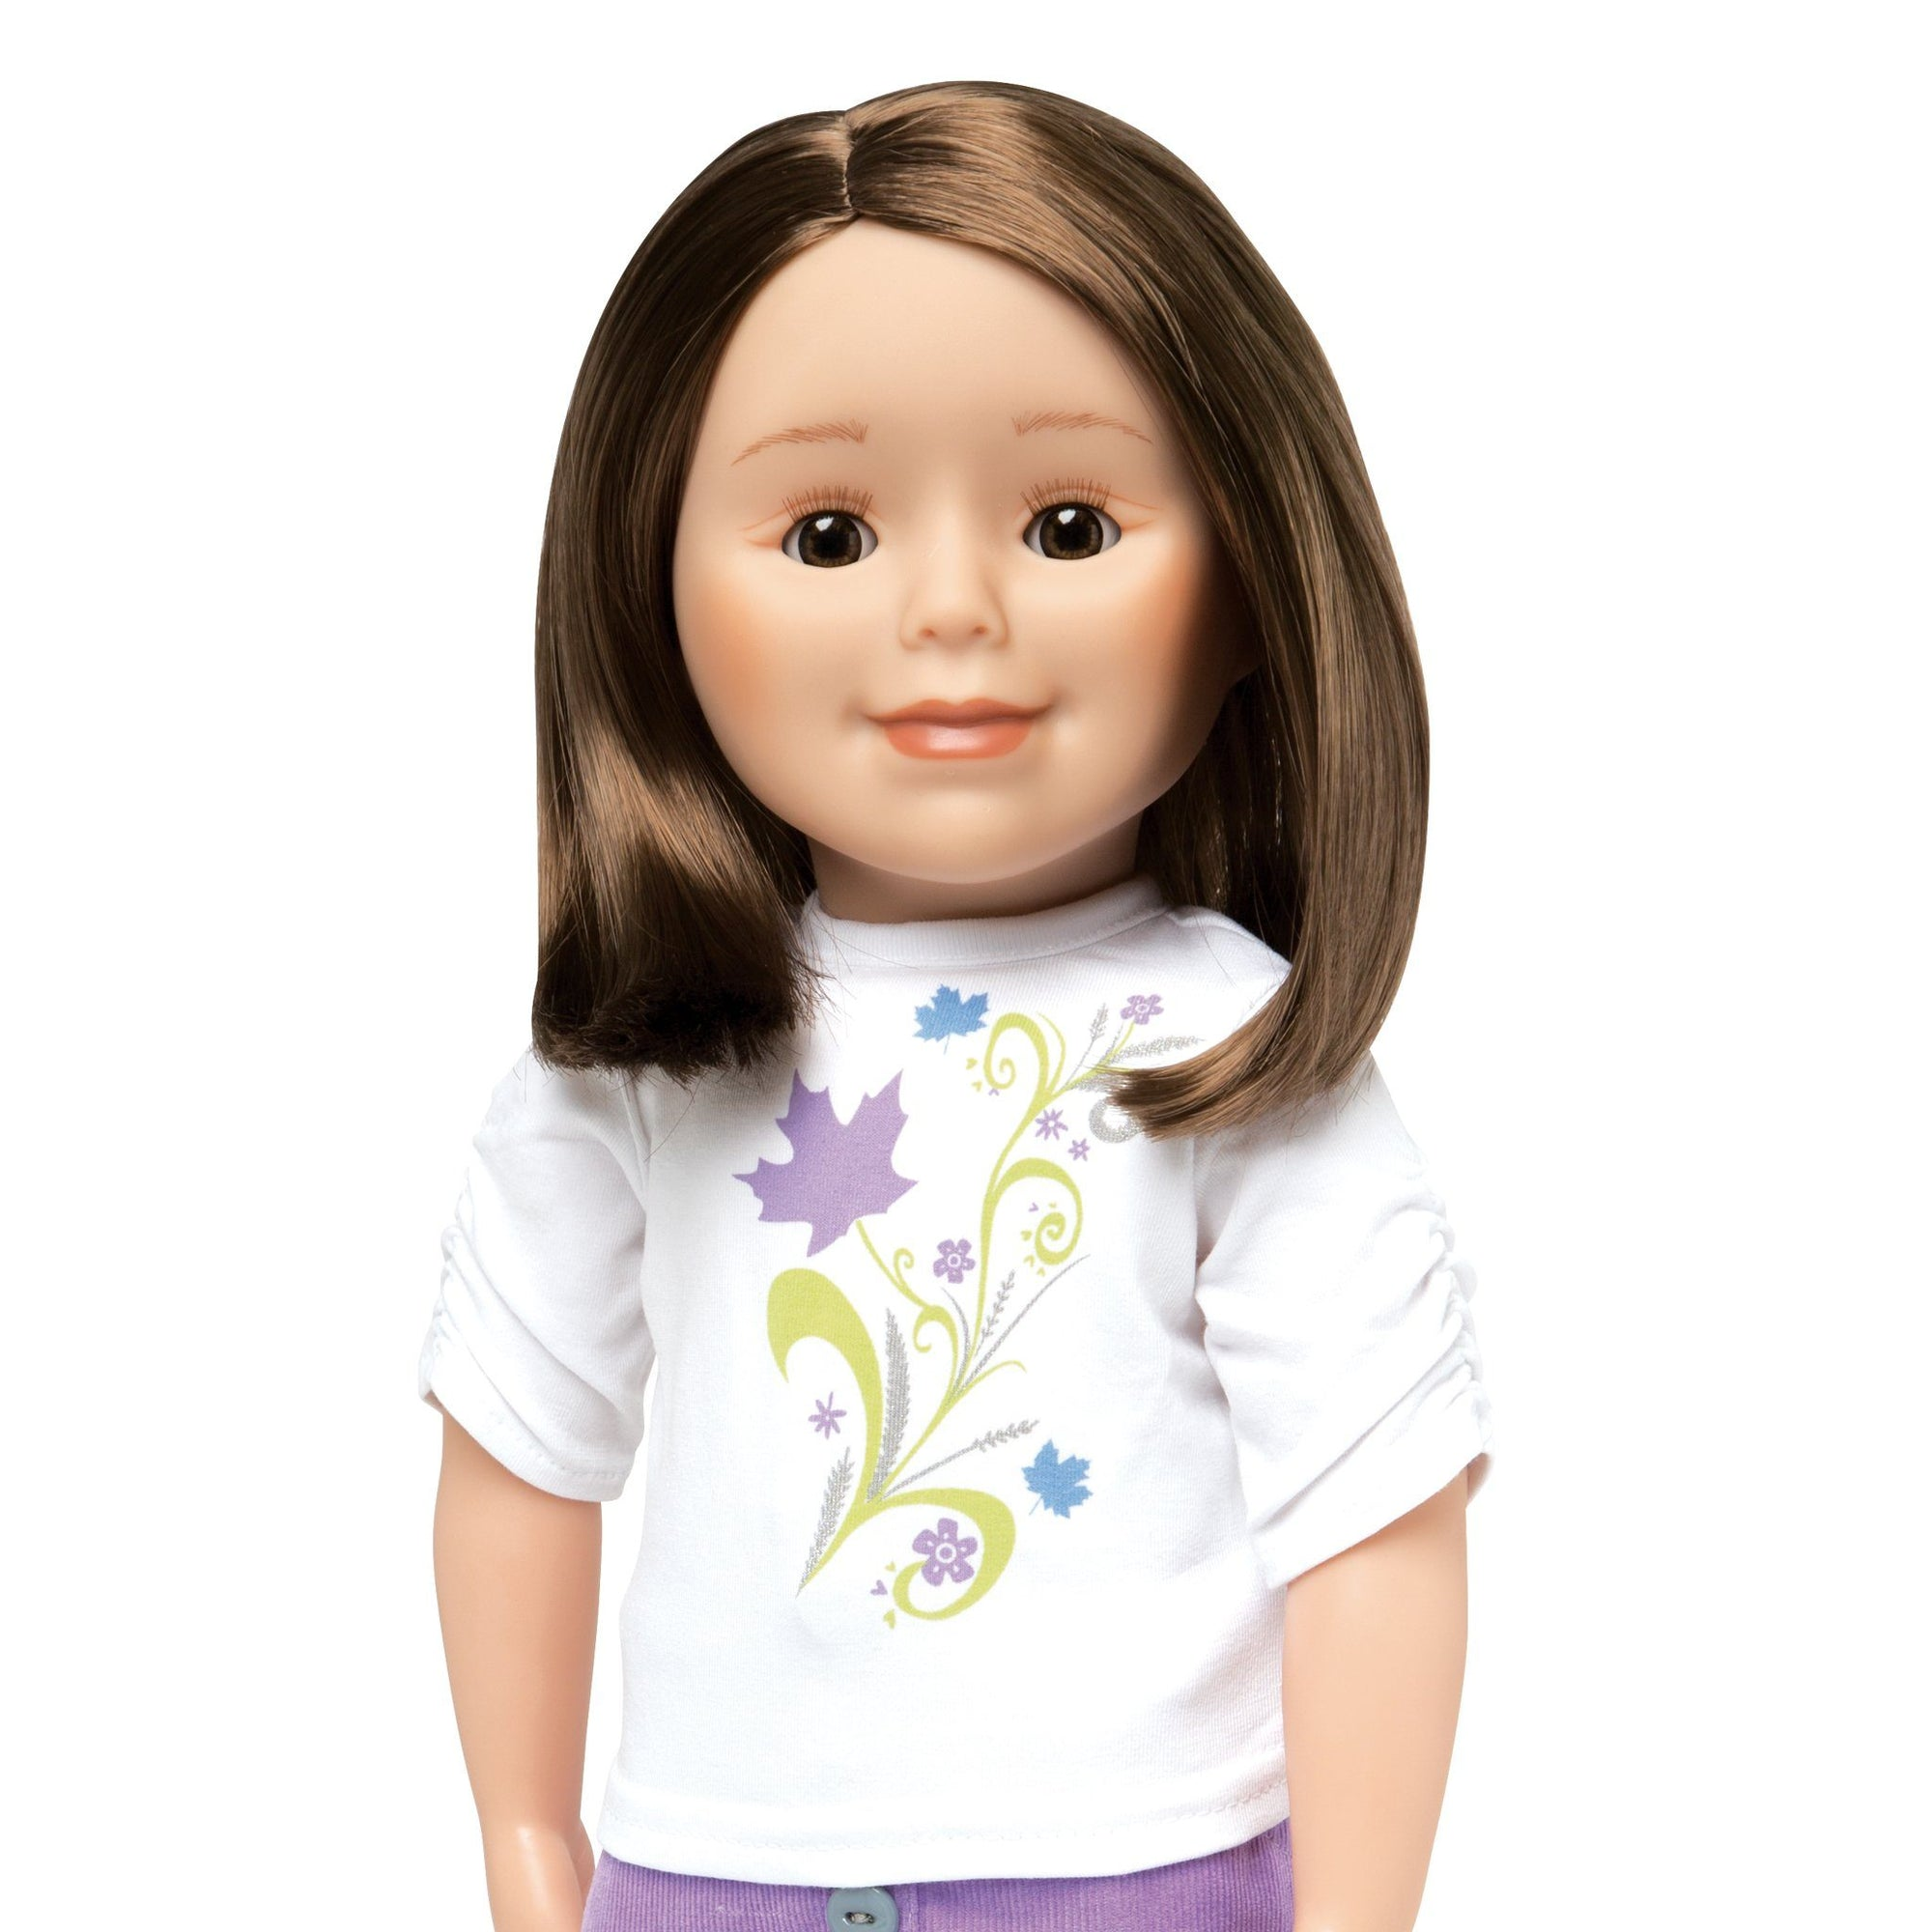 KMF23 Maplelea Friend 18 inch doll with shoulder-length brown hair, light skin and brown eyes.